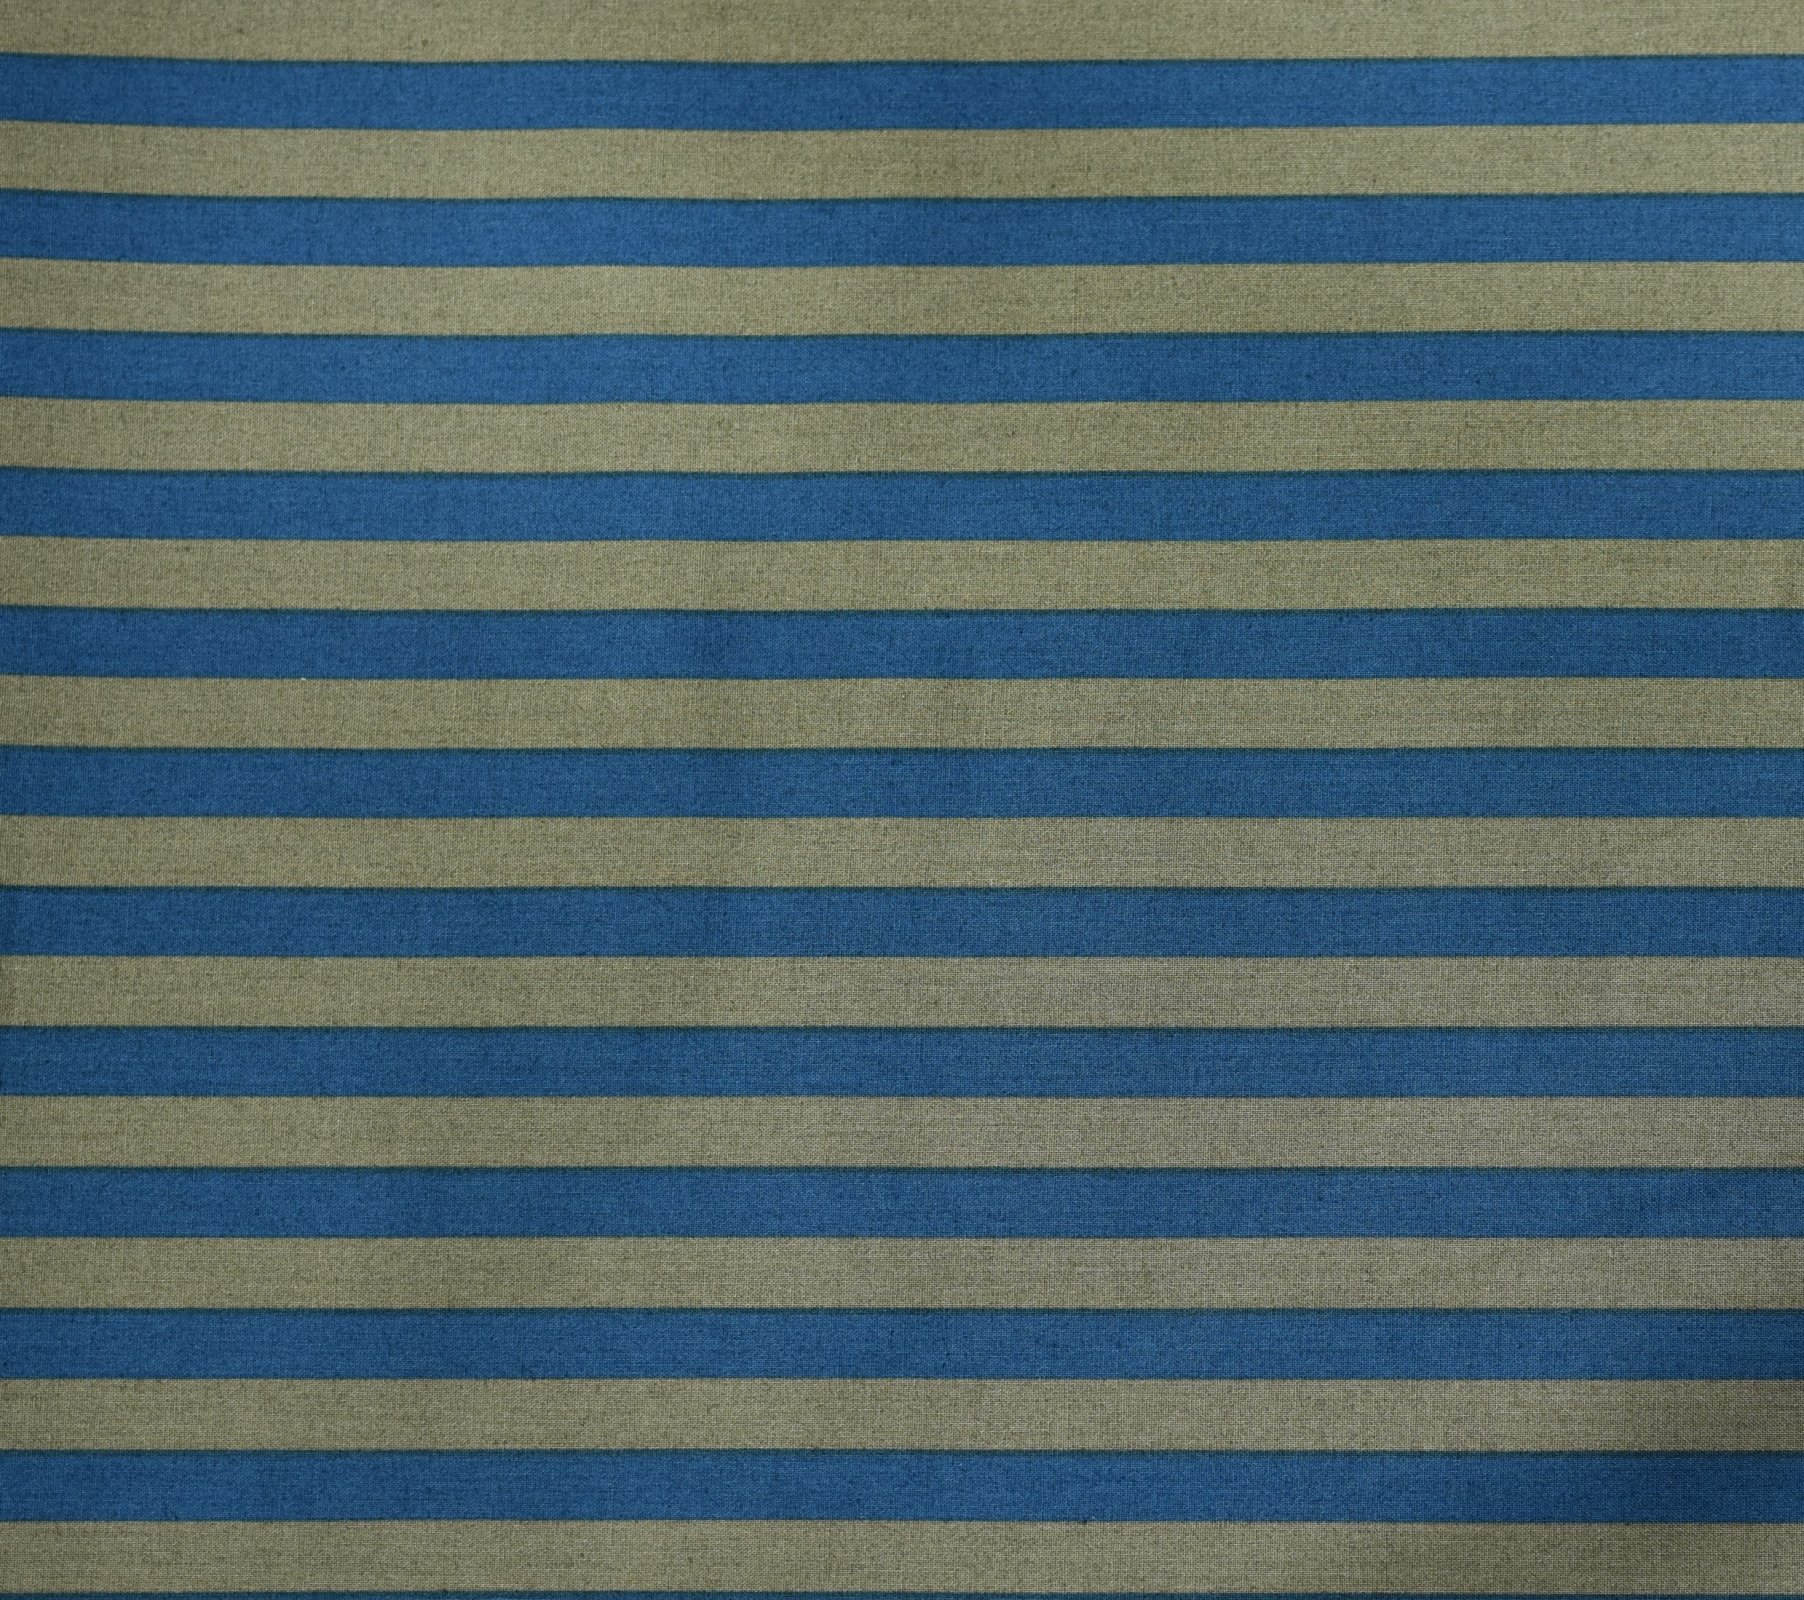 Japanese Fabric - Color Cocktails - Thick Stripe - Marine Blue/Grey